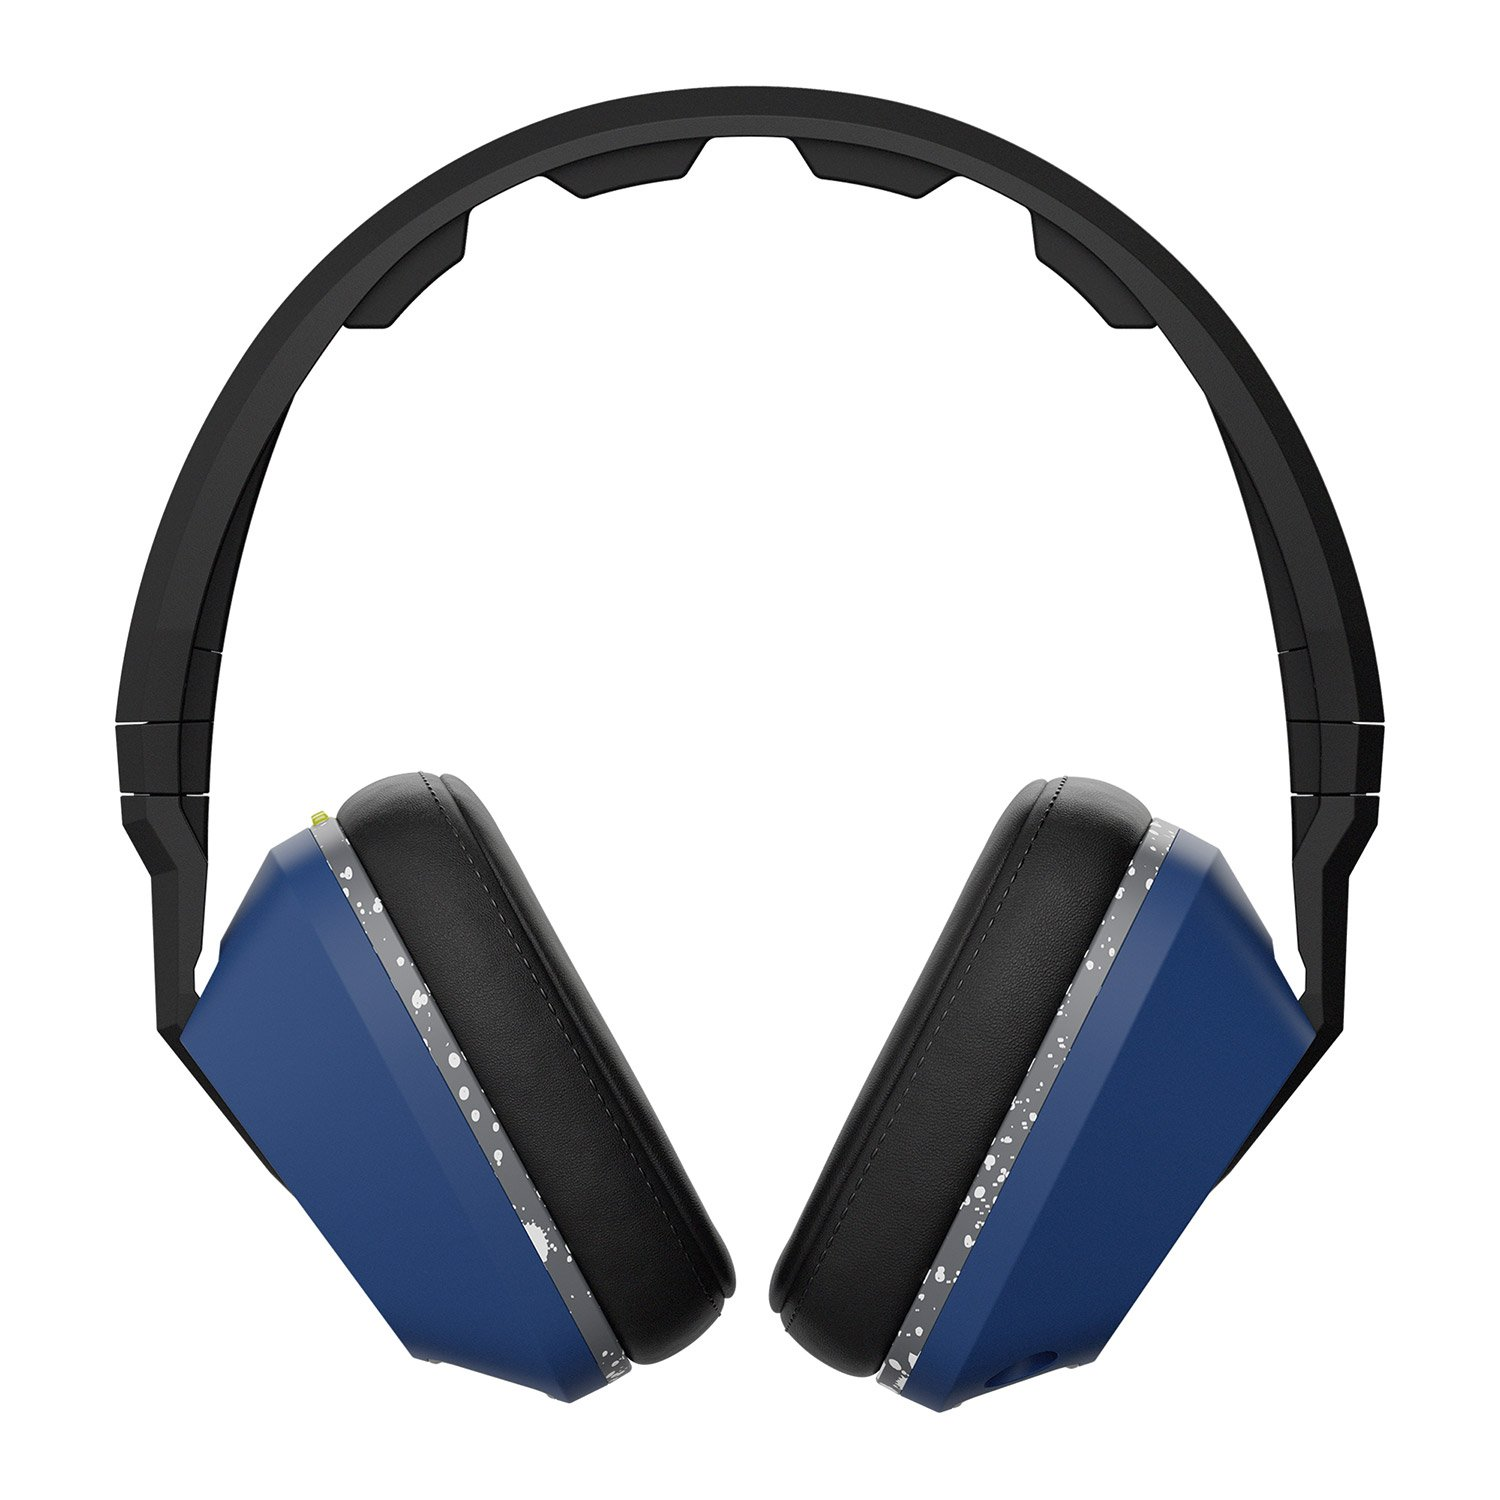 a497297b67c Amazon.com: Skullcandy Crusher Headphones with Built-in Amplifier and Mic,  Black Blue and Gray: Home Audio & Theater